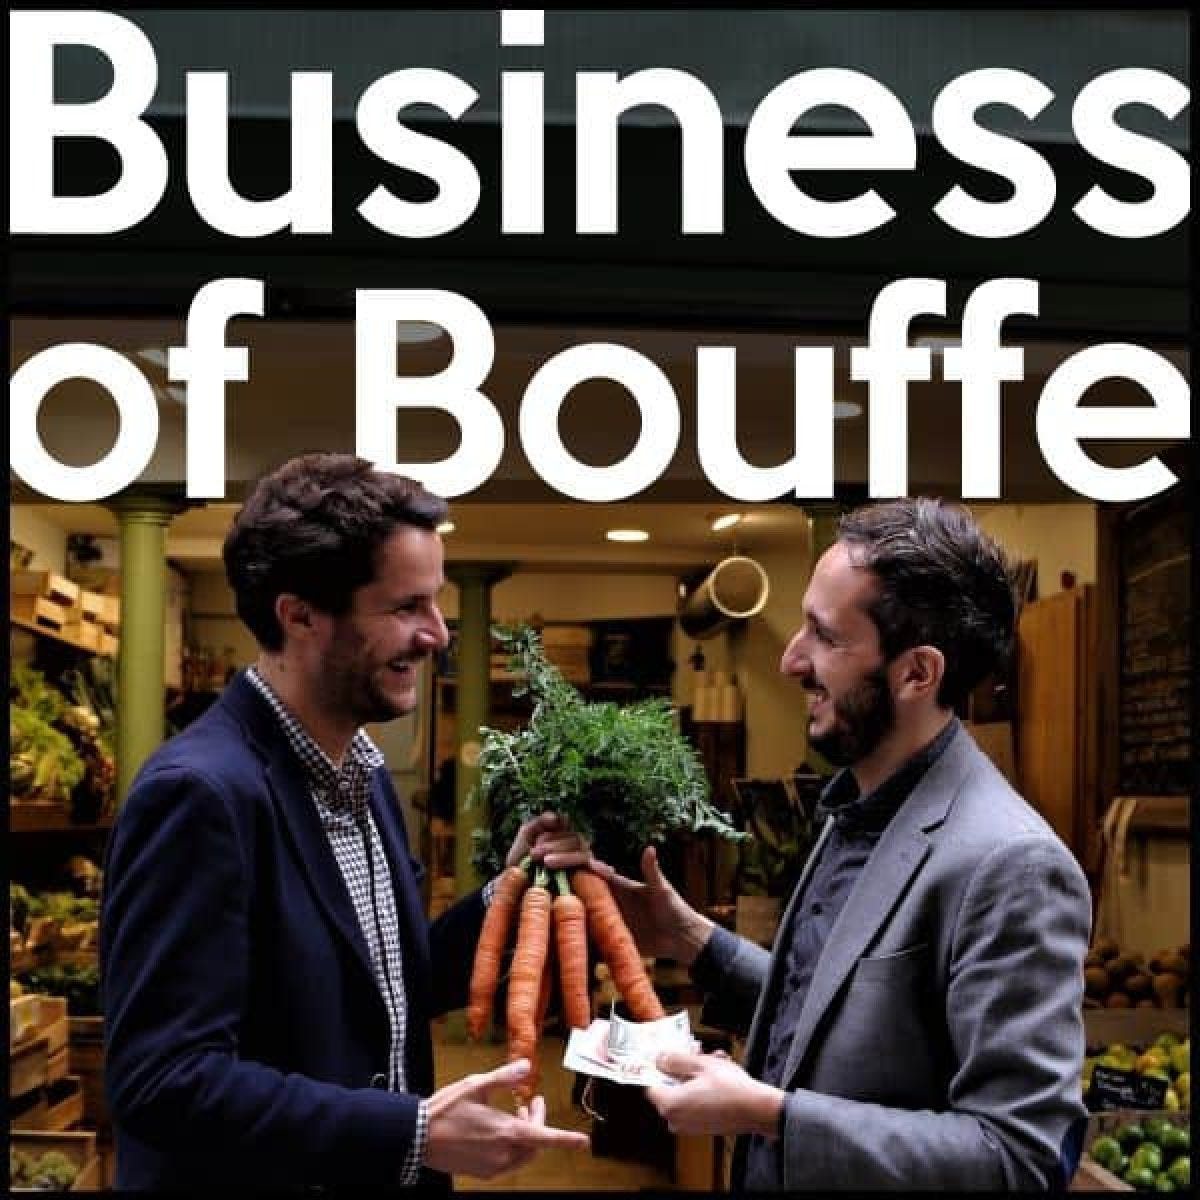 Podcast Business of Bouffe - Le Podcast Food et Business